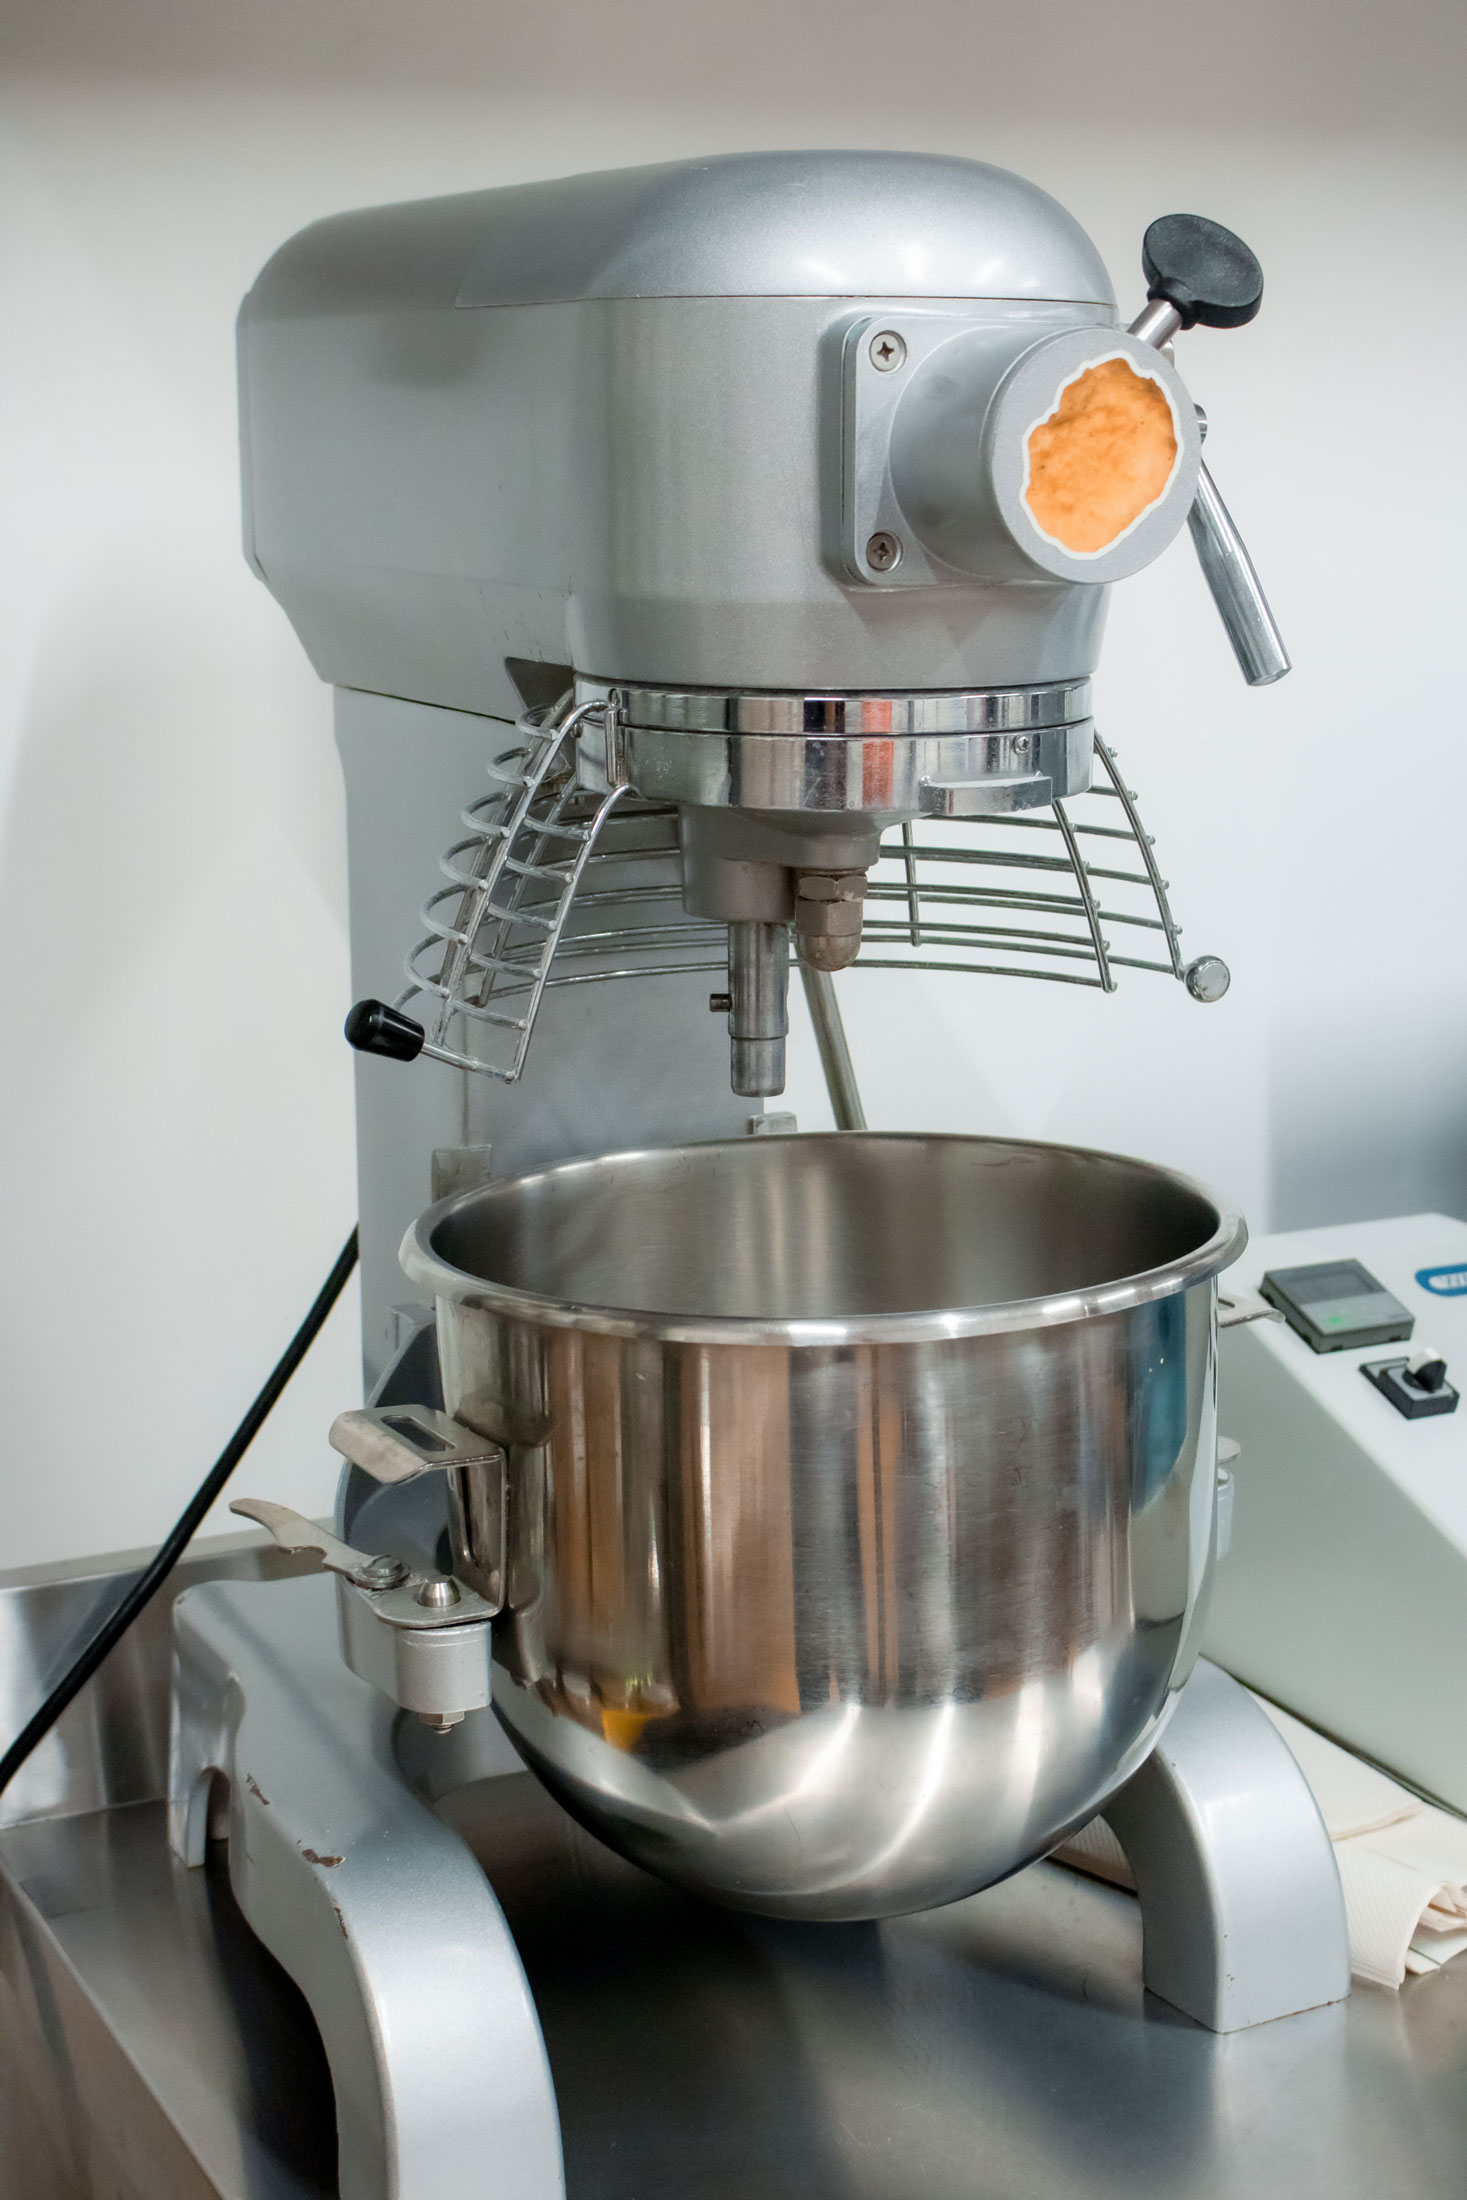 A large, powerful mixer used to blend the ingredients of the plant-based nuggets.